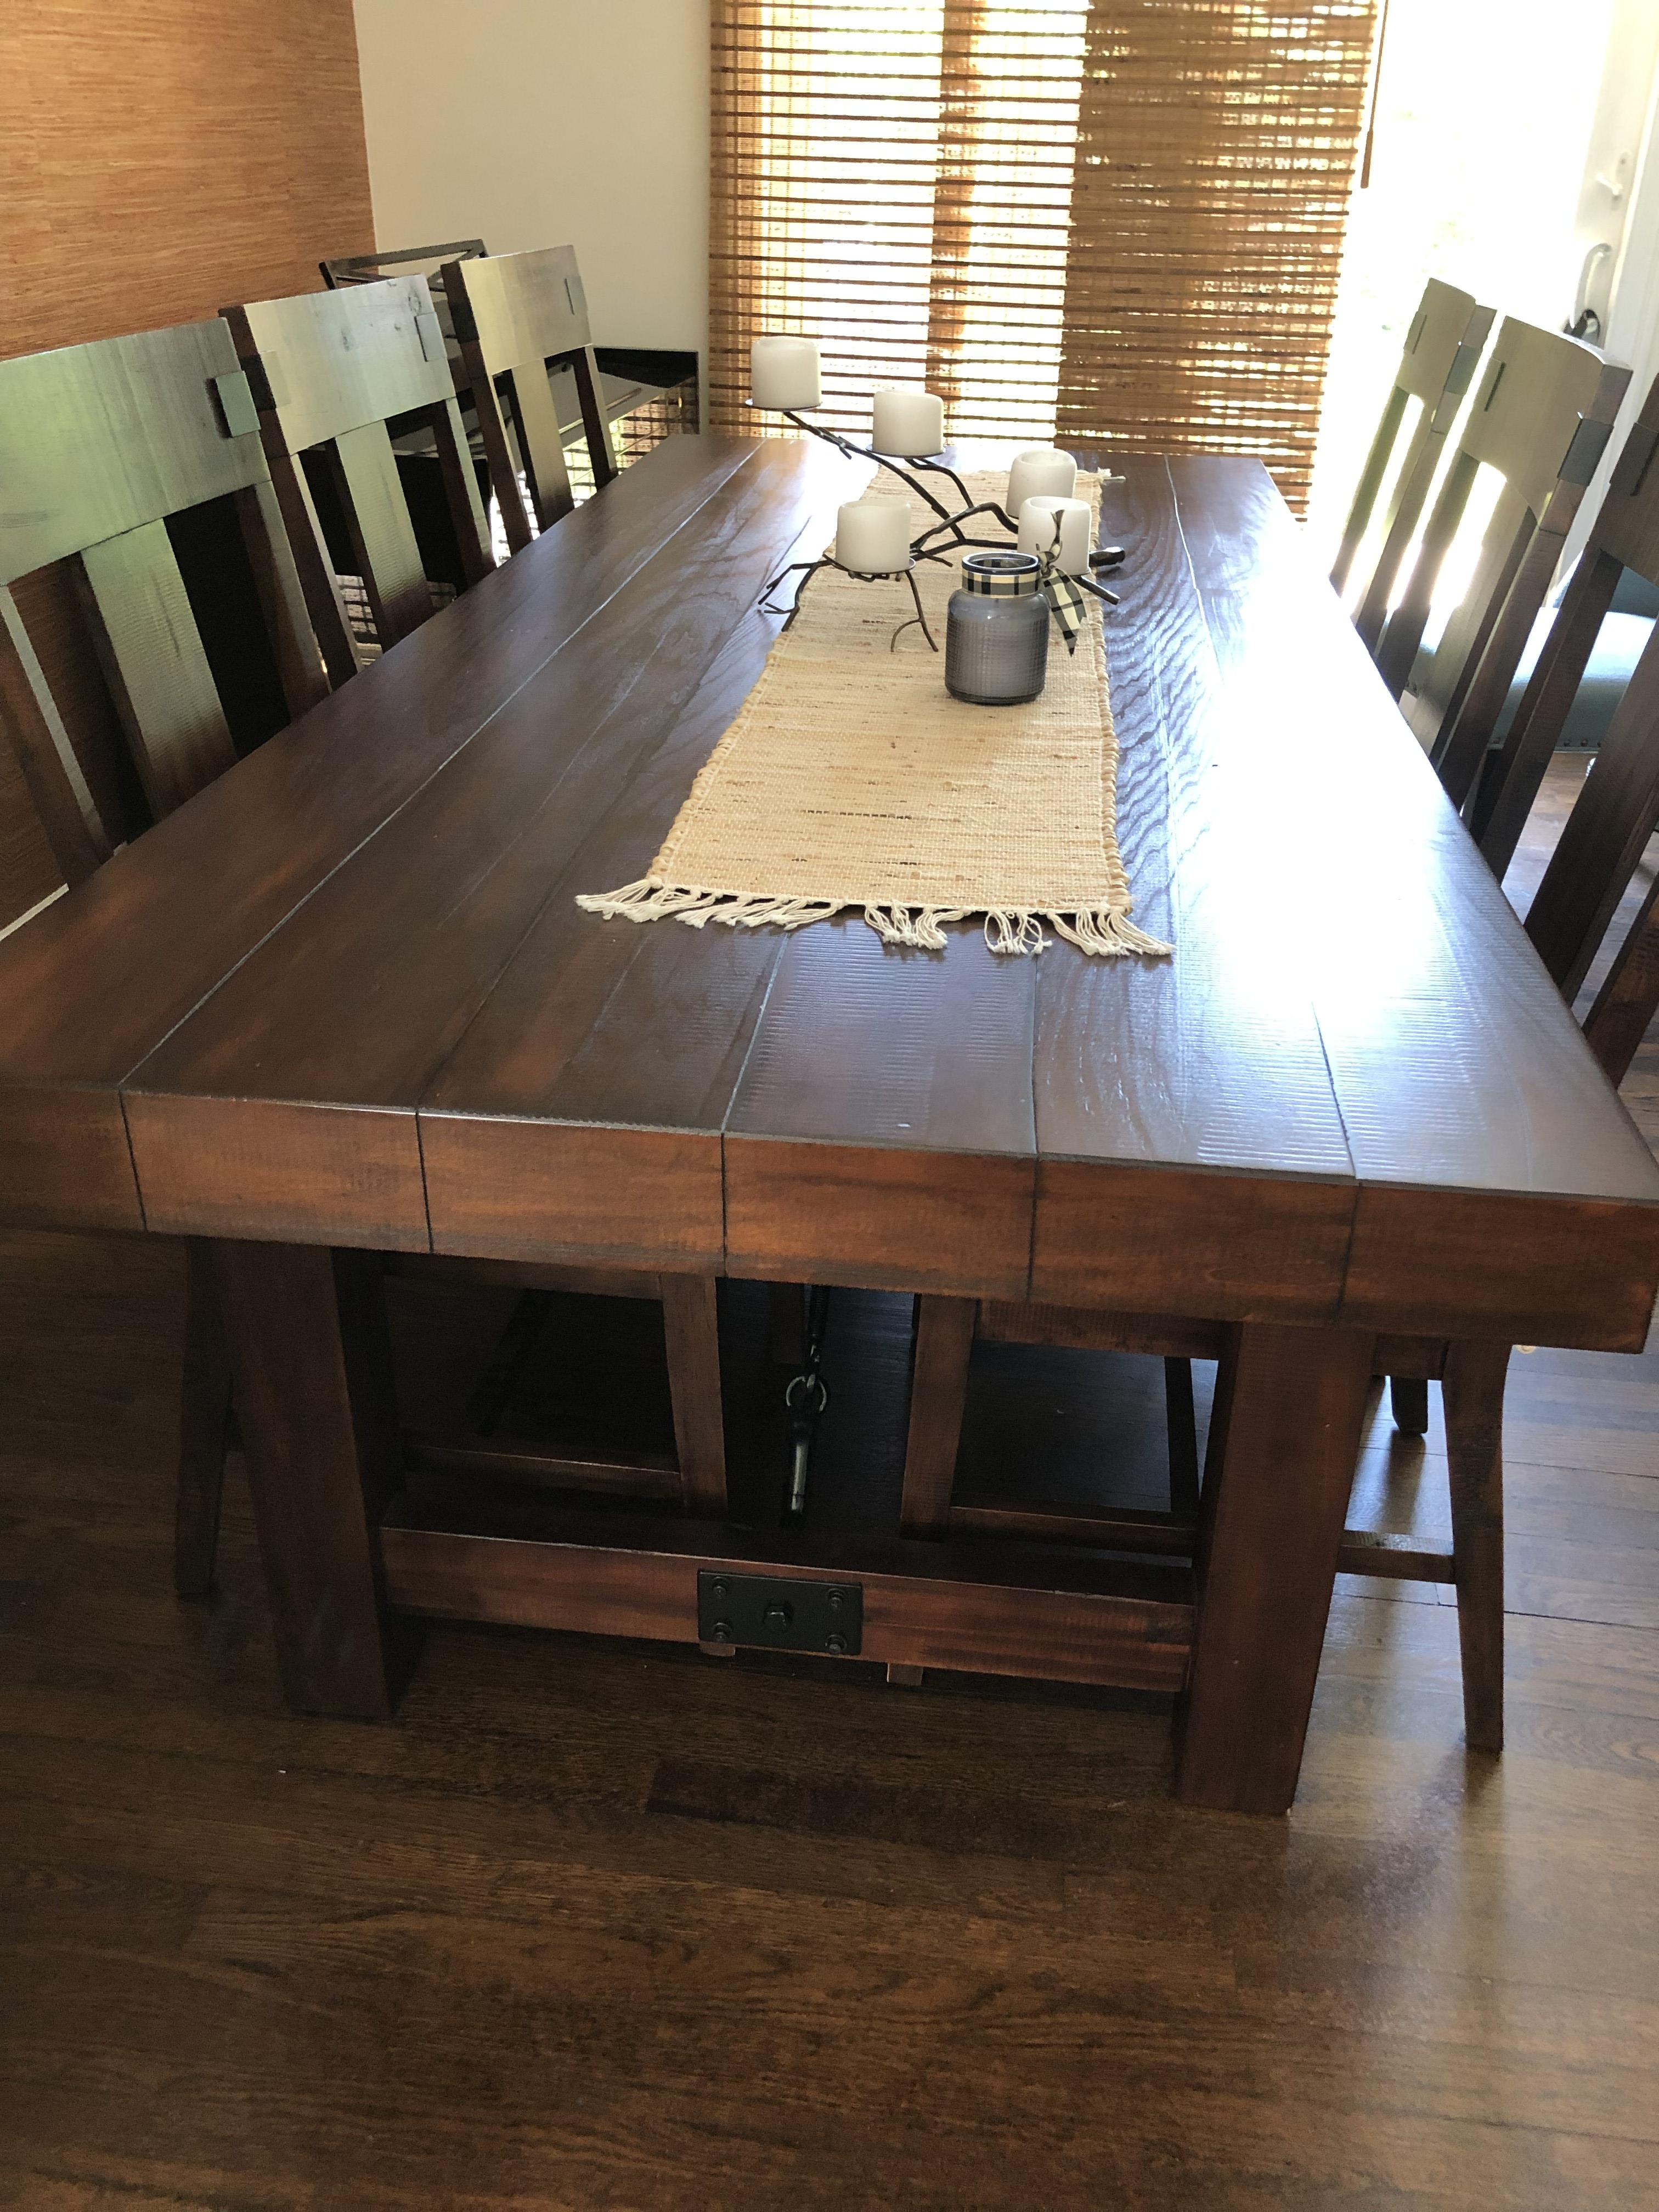 Pier 1 Dining Table w/ 6 Chairs